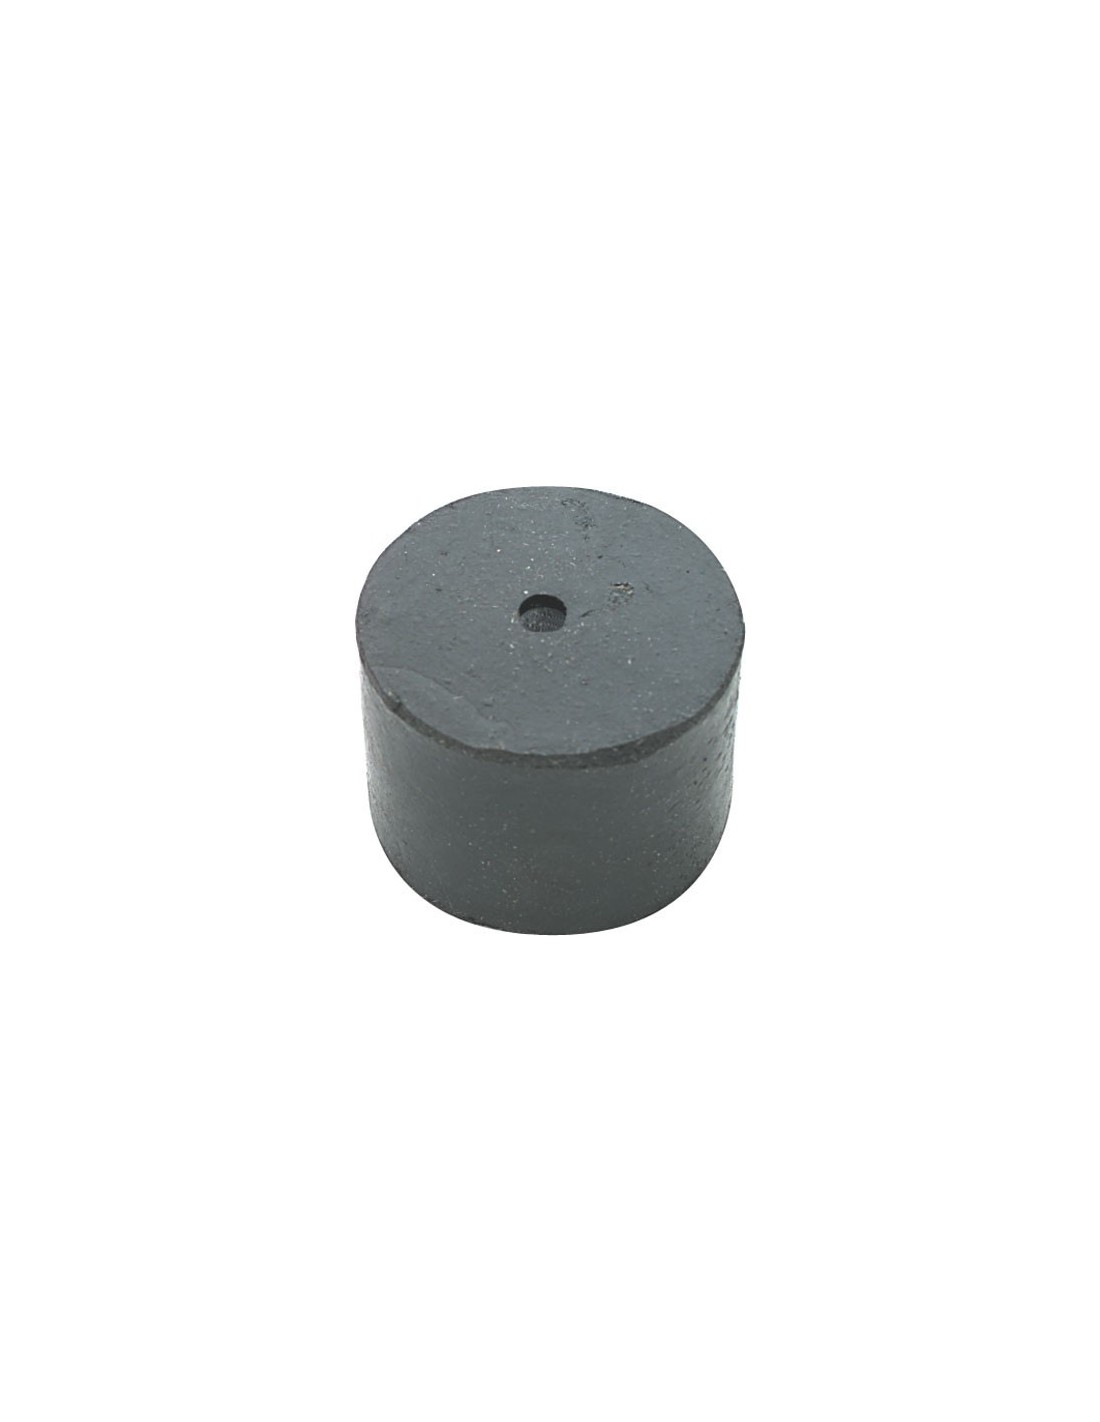 Basic Rubber Door Stop Floor Fix 34mm Black